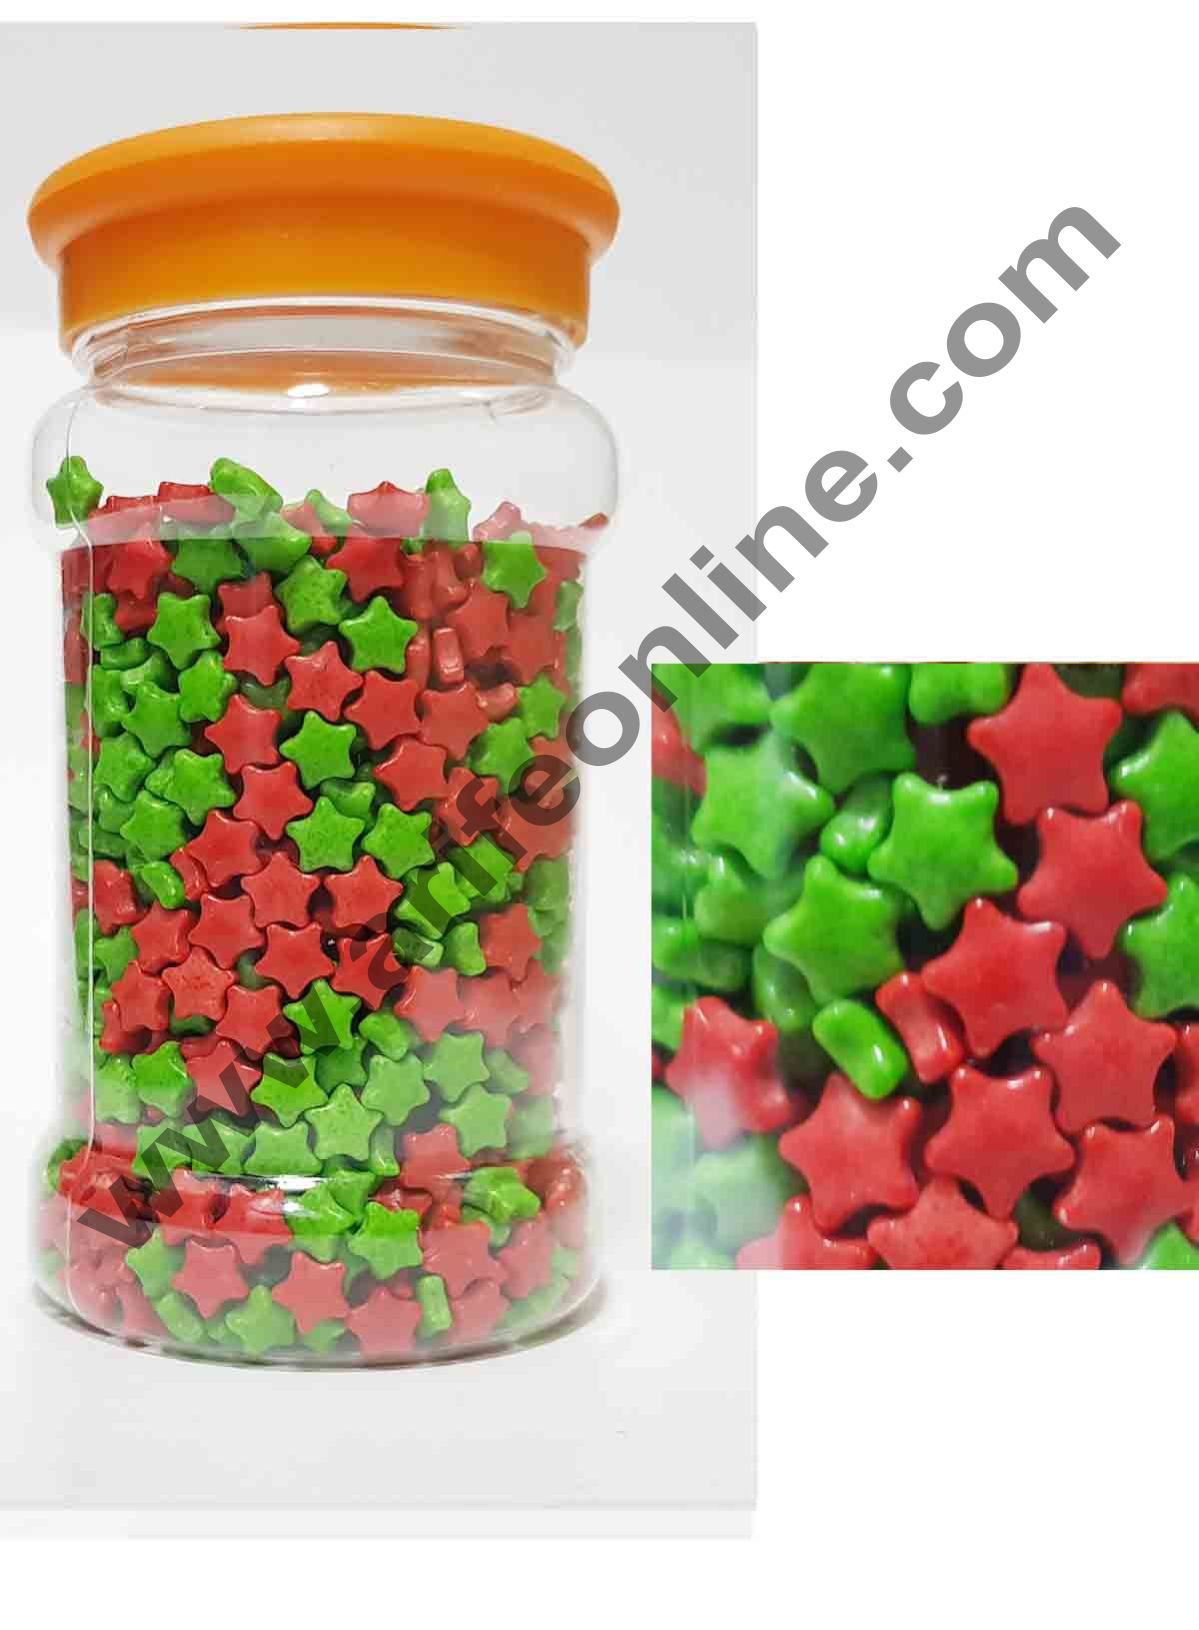 Cake Decor Christmas Stars Red,Green Sugar Candy